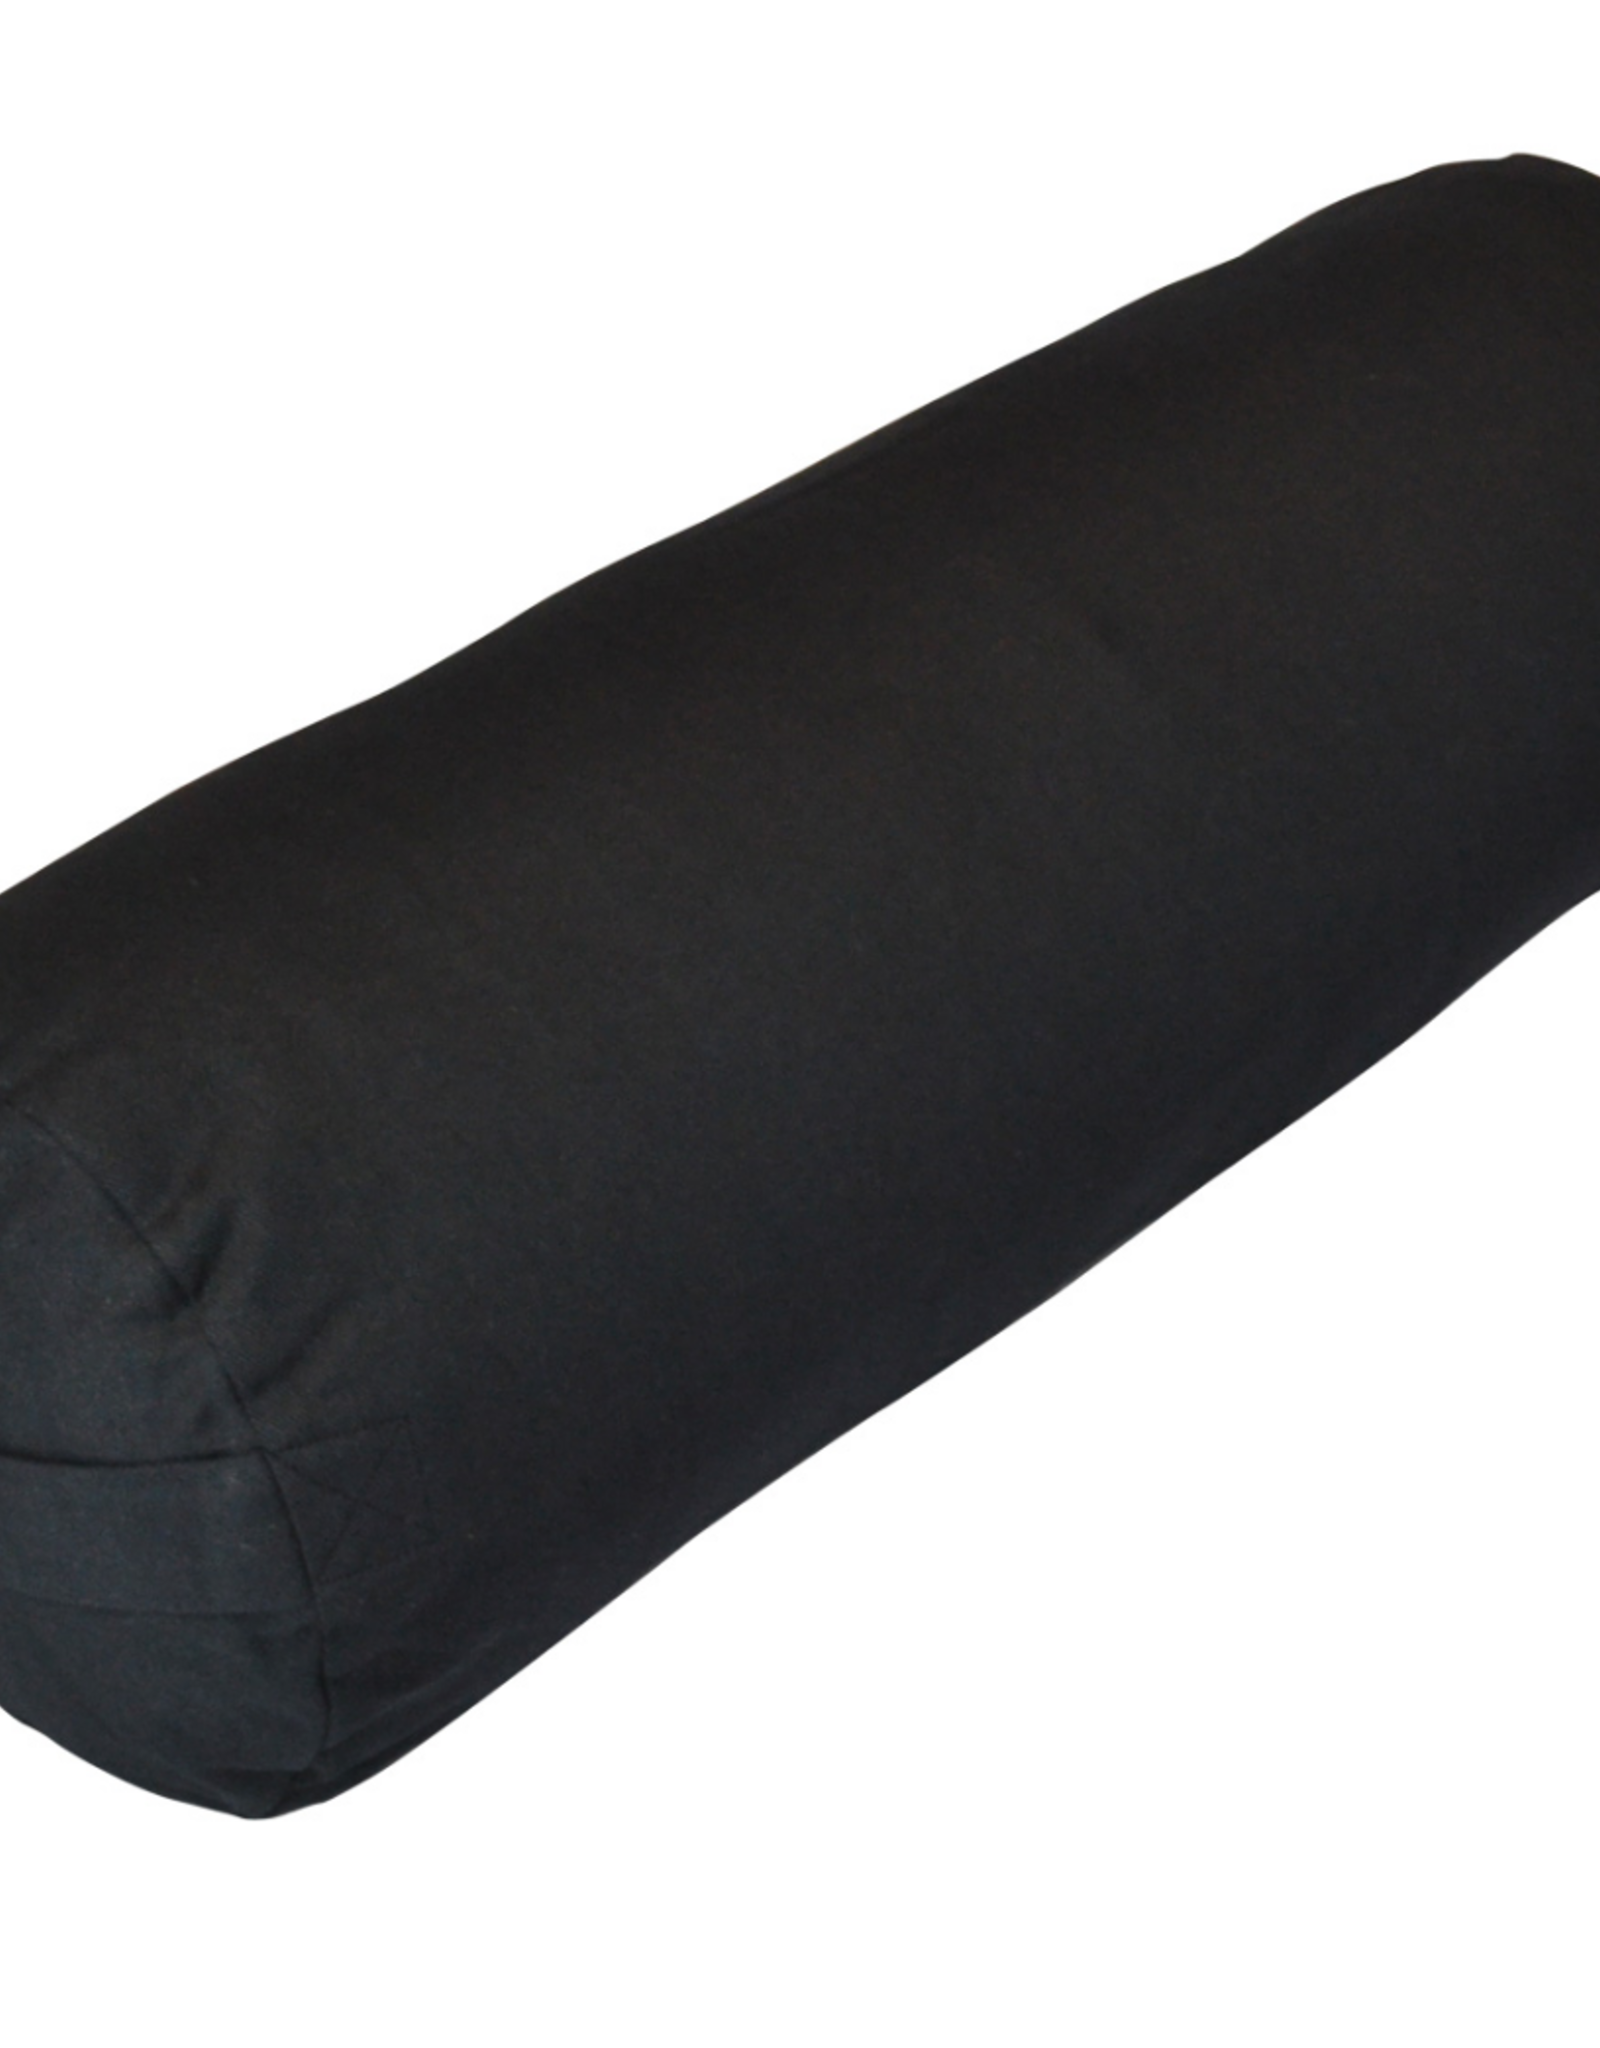 Yoga Accessories Small Round Cotton Bolster - Black